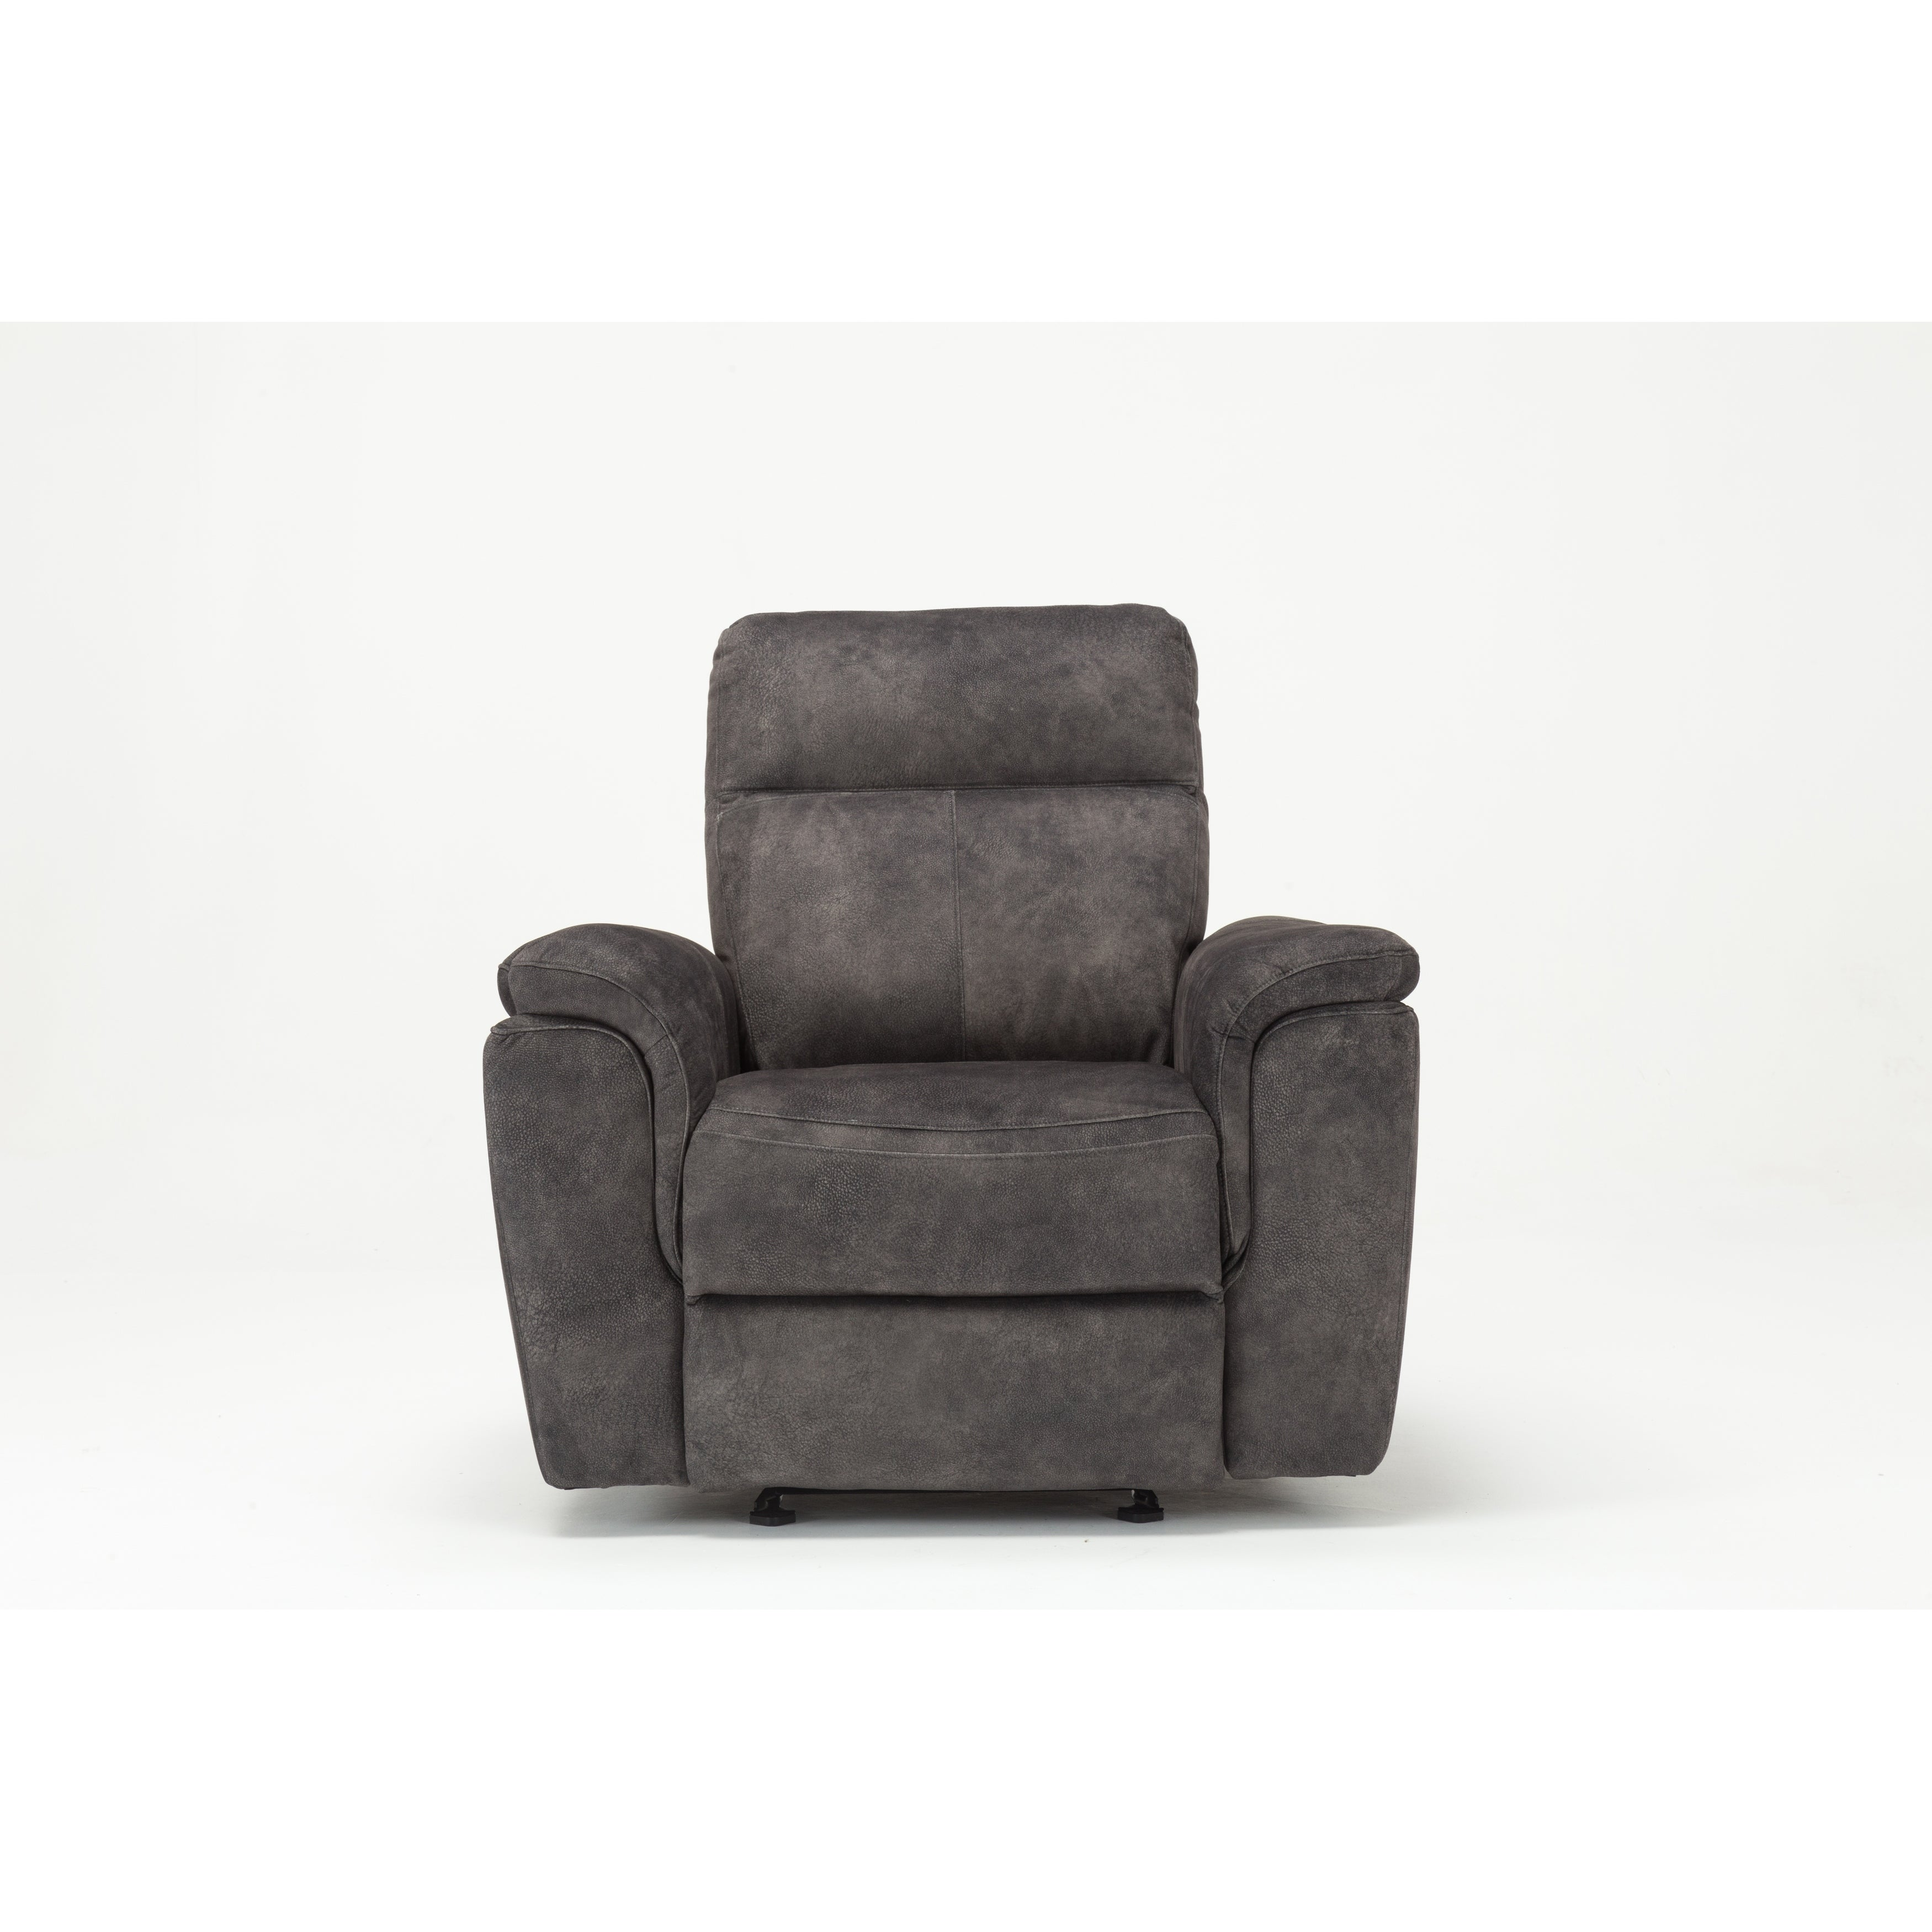 GU Industries Palomino Fabric Upholstered Living Room Recliner Chair